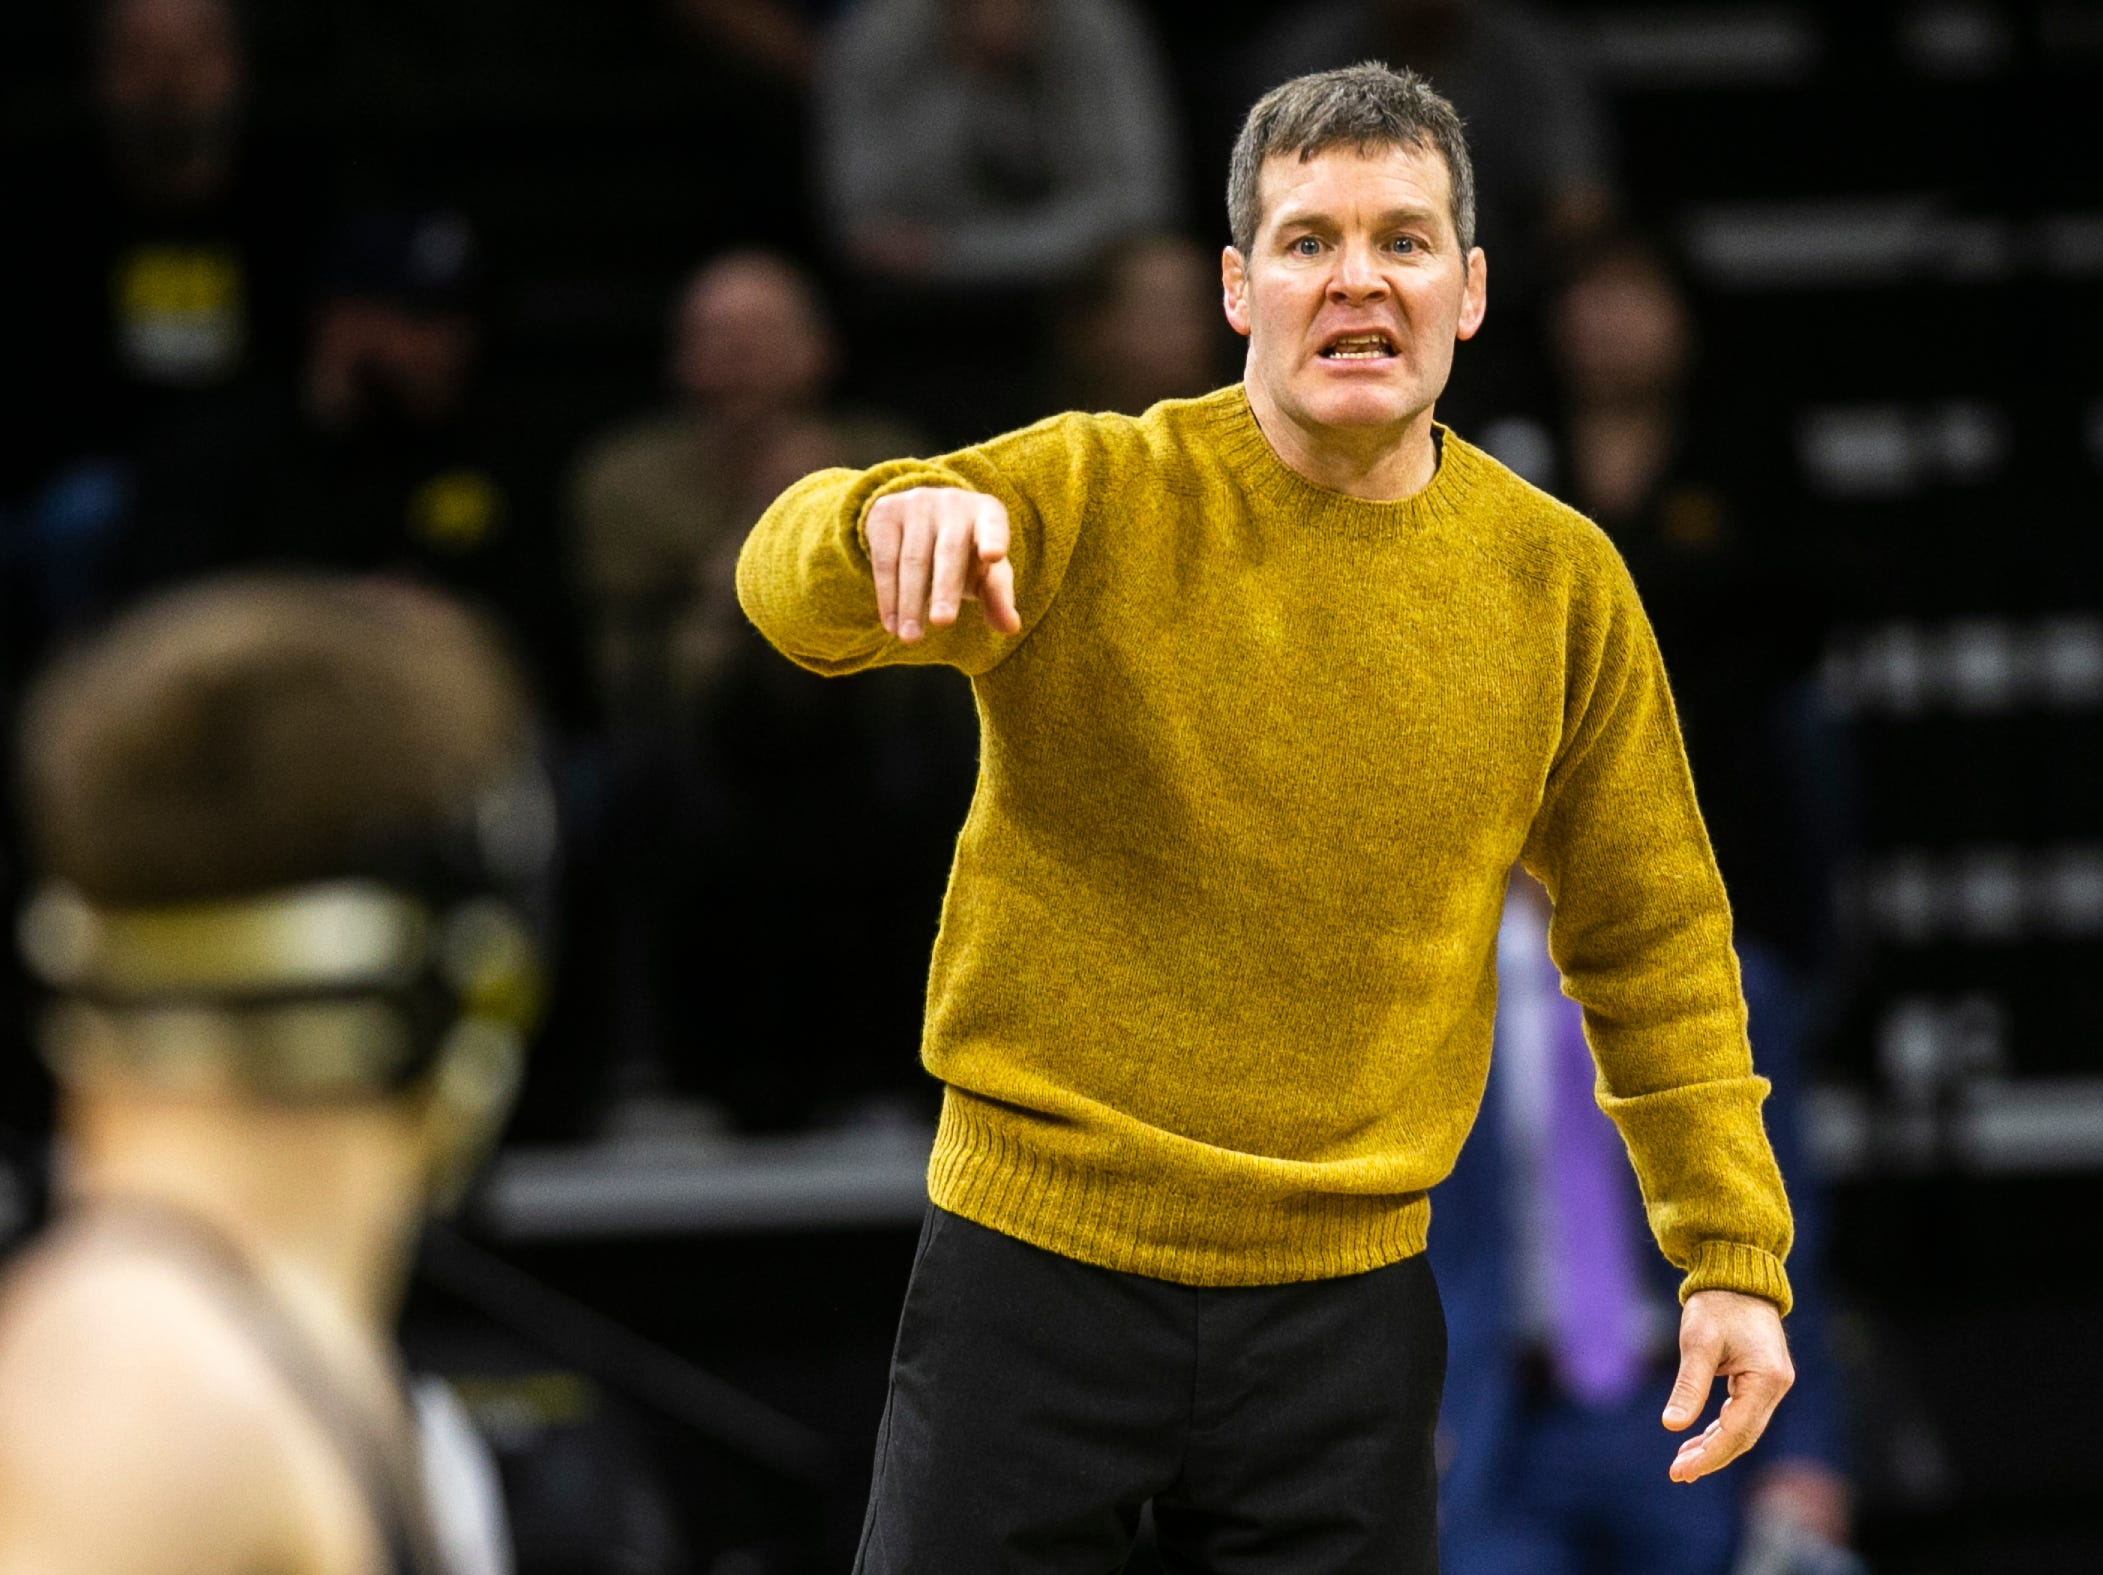 Iowa head coach Tom Brands calls out to Austin DeSanto during a NCAA Big Ten Conference wrestling dual on Friday, Jan. 18, 2019, at Carver-Hawkeye Arena in Iowa City, Iowa.